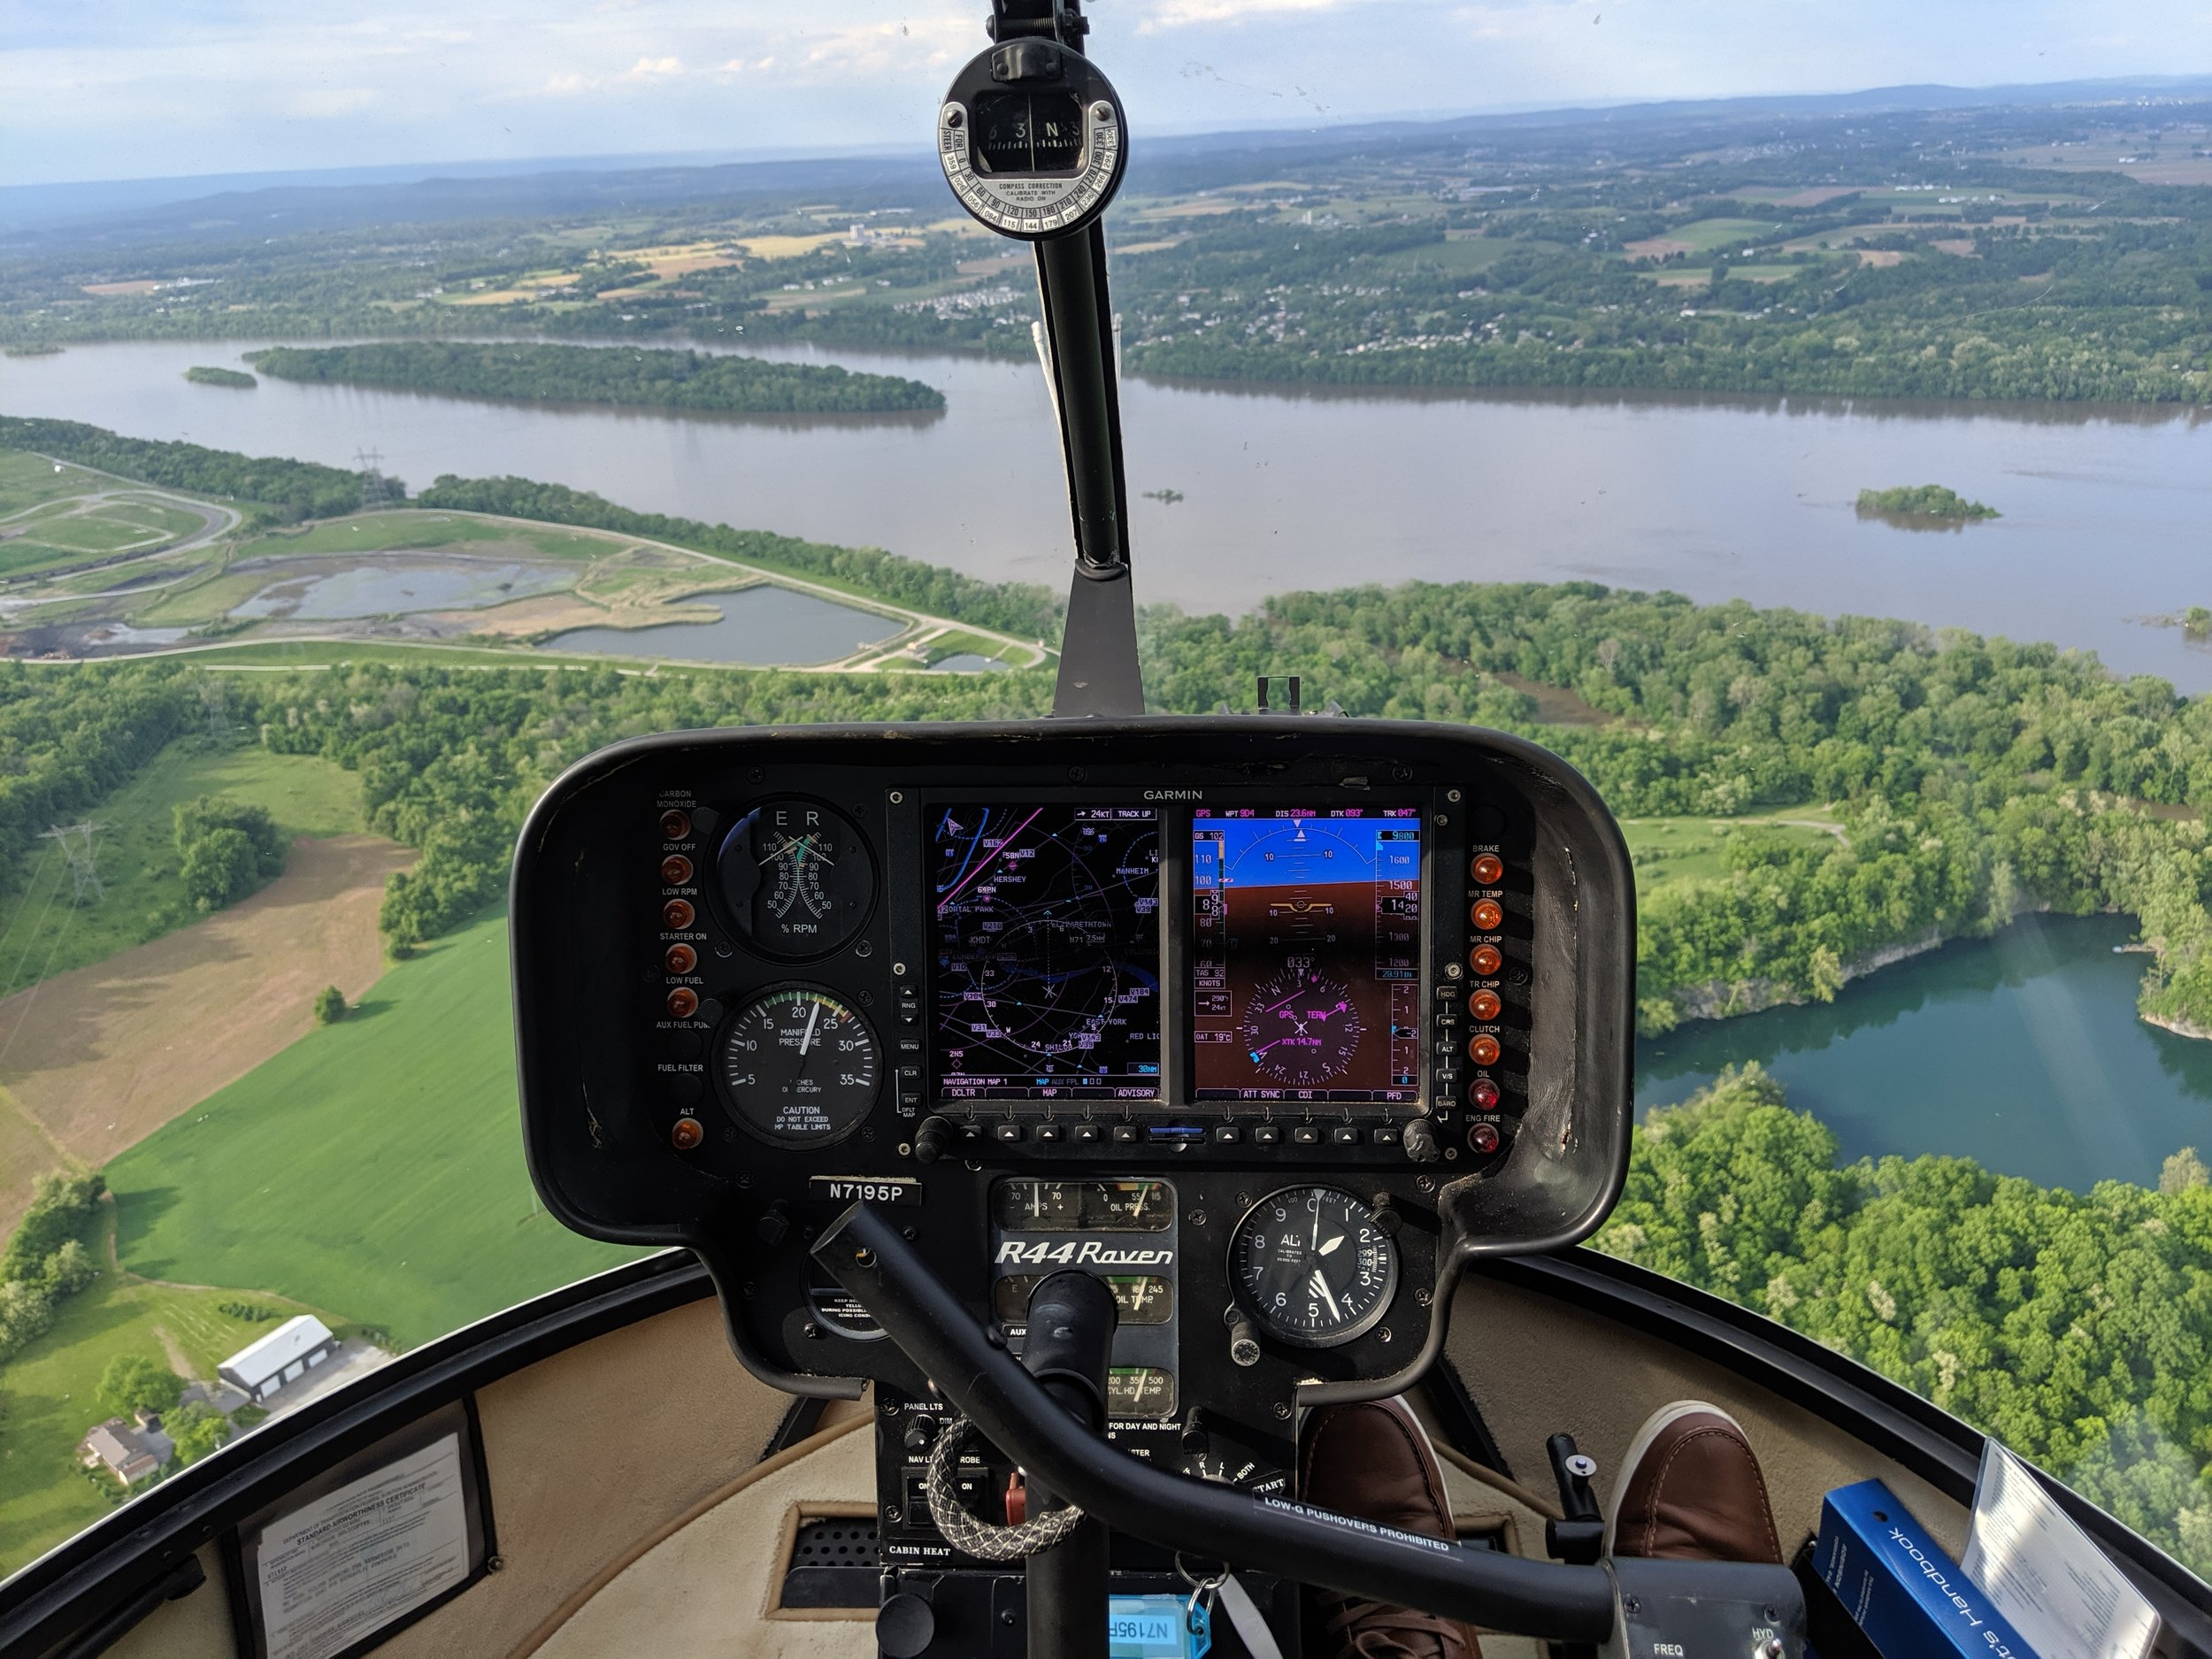 Heli Tours with Updraft Aviation - We pride ourselves in providing the best helicopter tours in South Central, Pennsylvania. Want to learn more about why you should book with us?